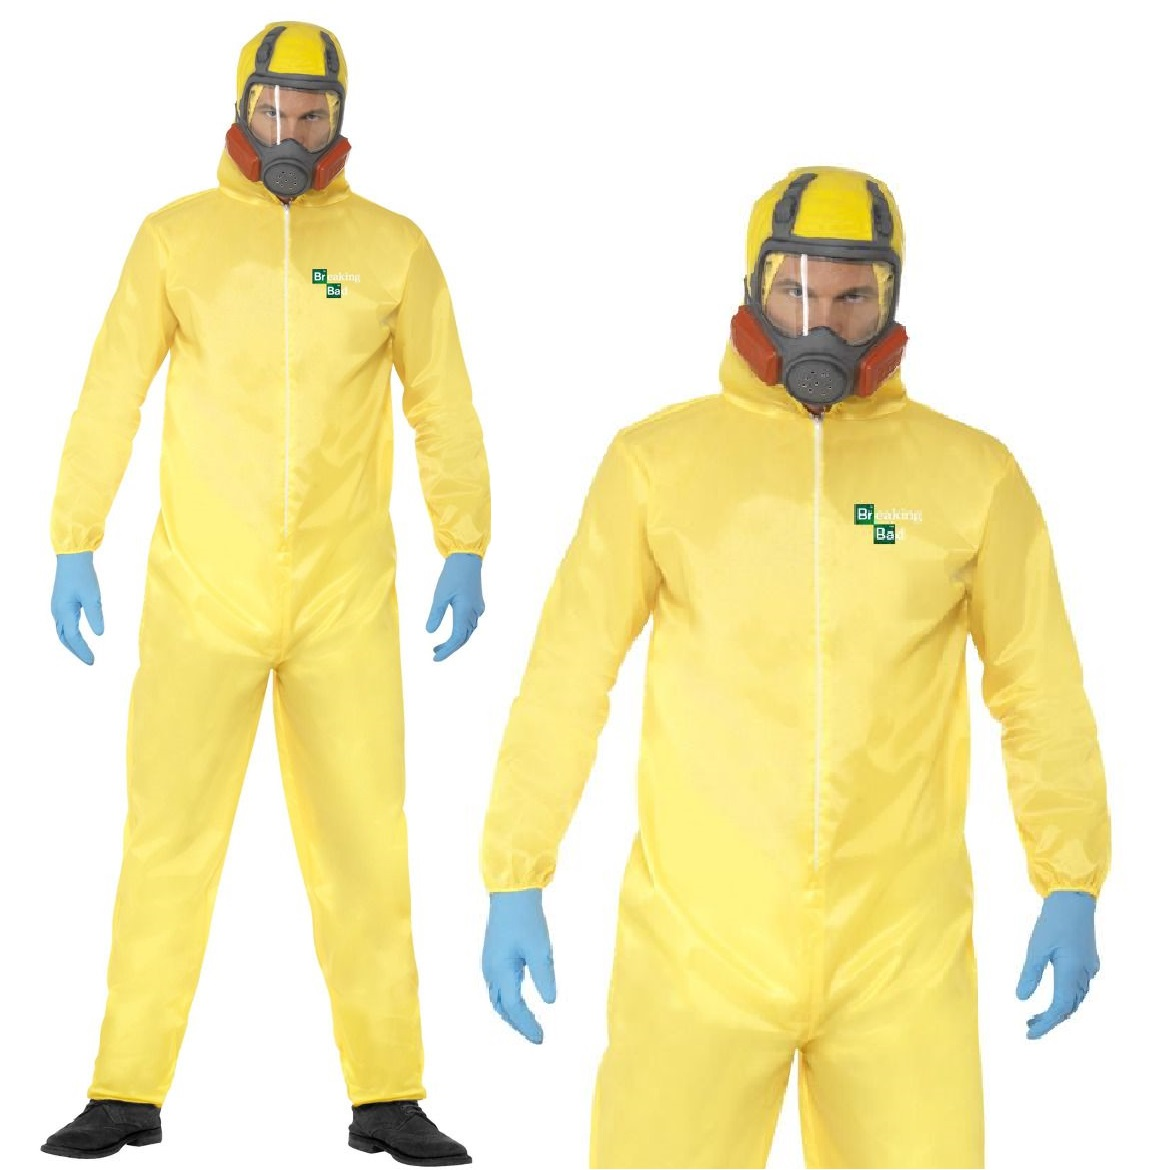 Adult Breaking Bad Costume Walter White Hazmat Chemical Suit Fancy Dress New Ebay